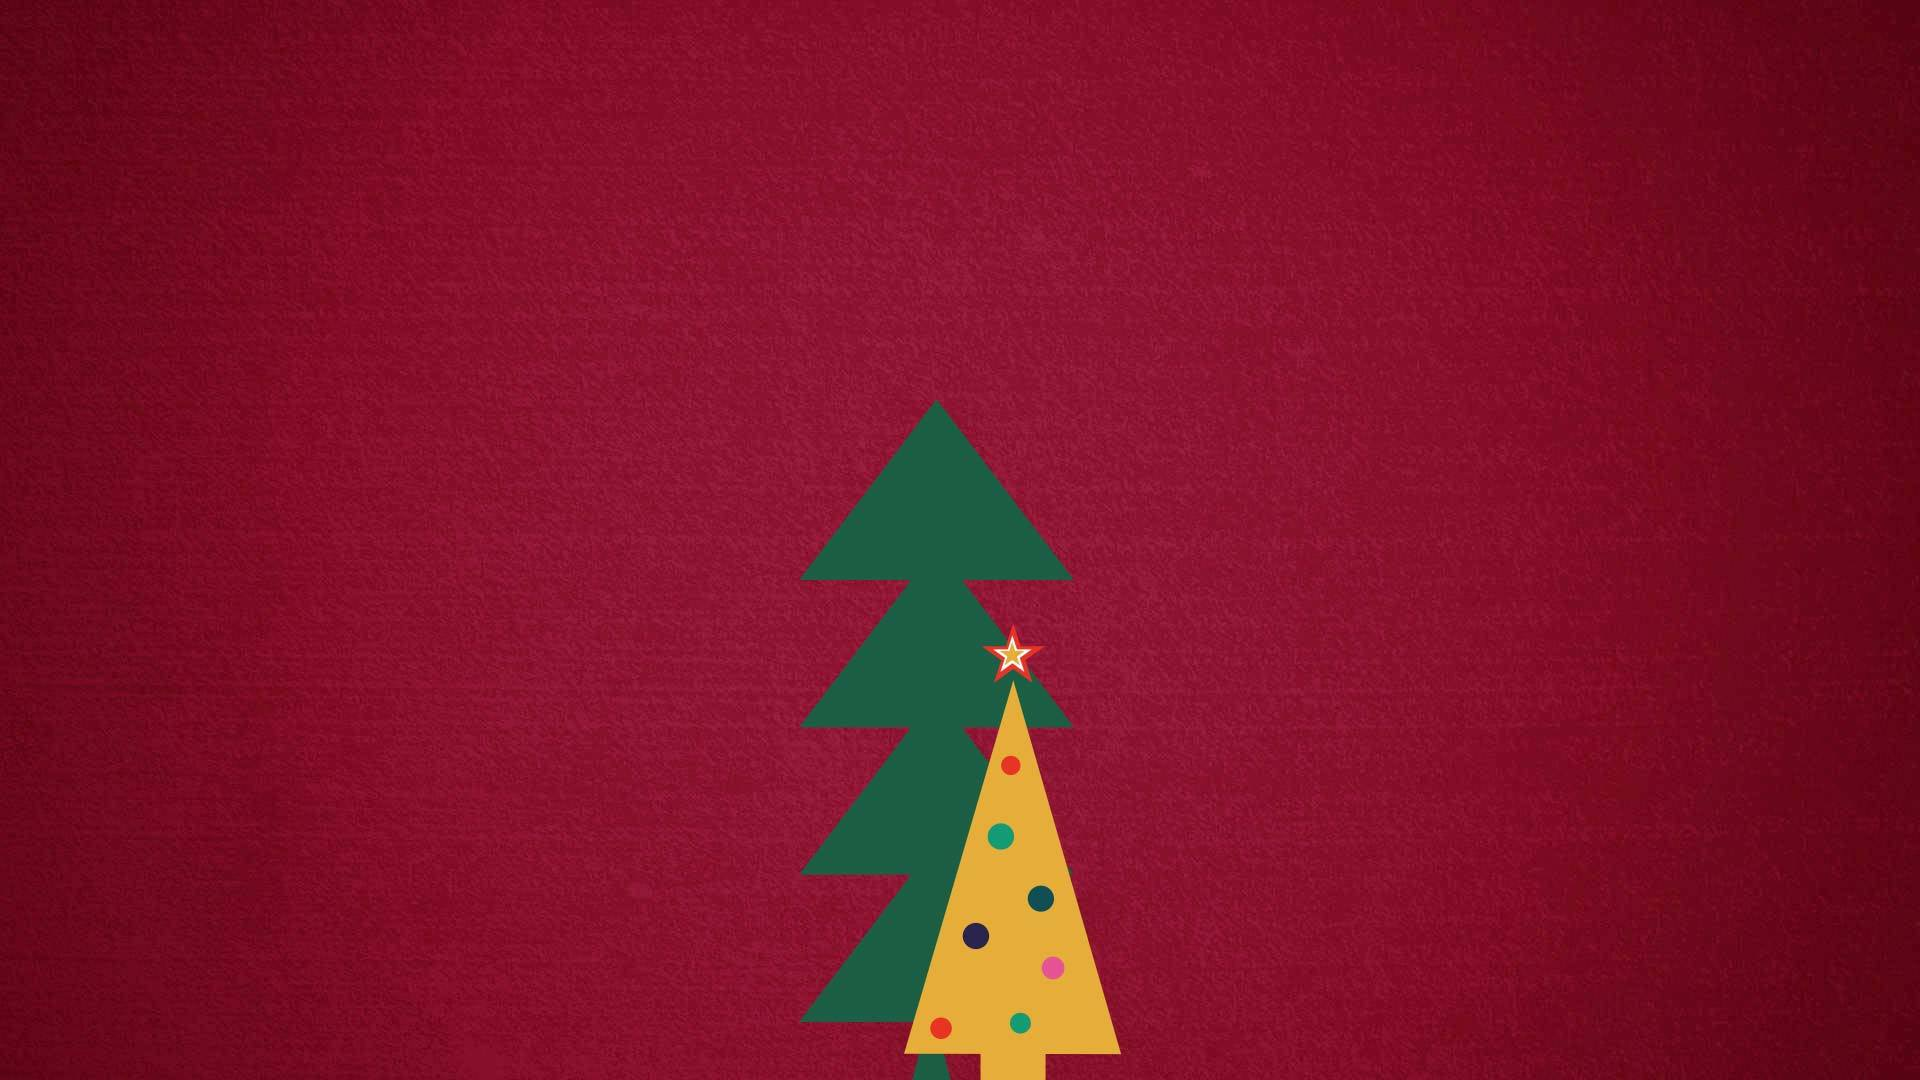 Countdownto Christmas Red Background